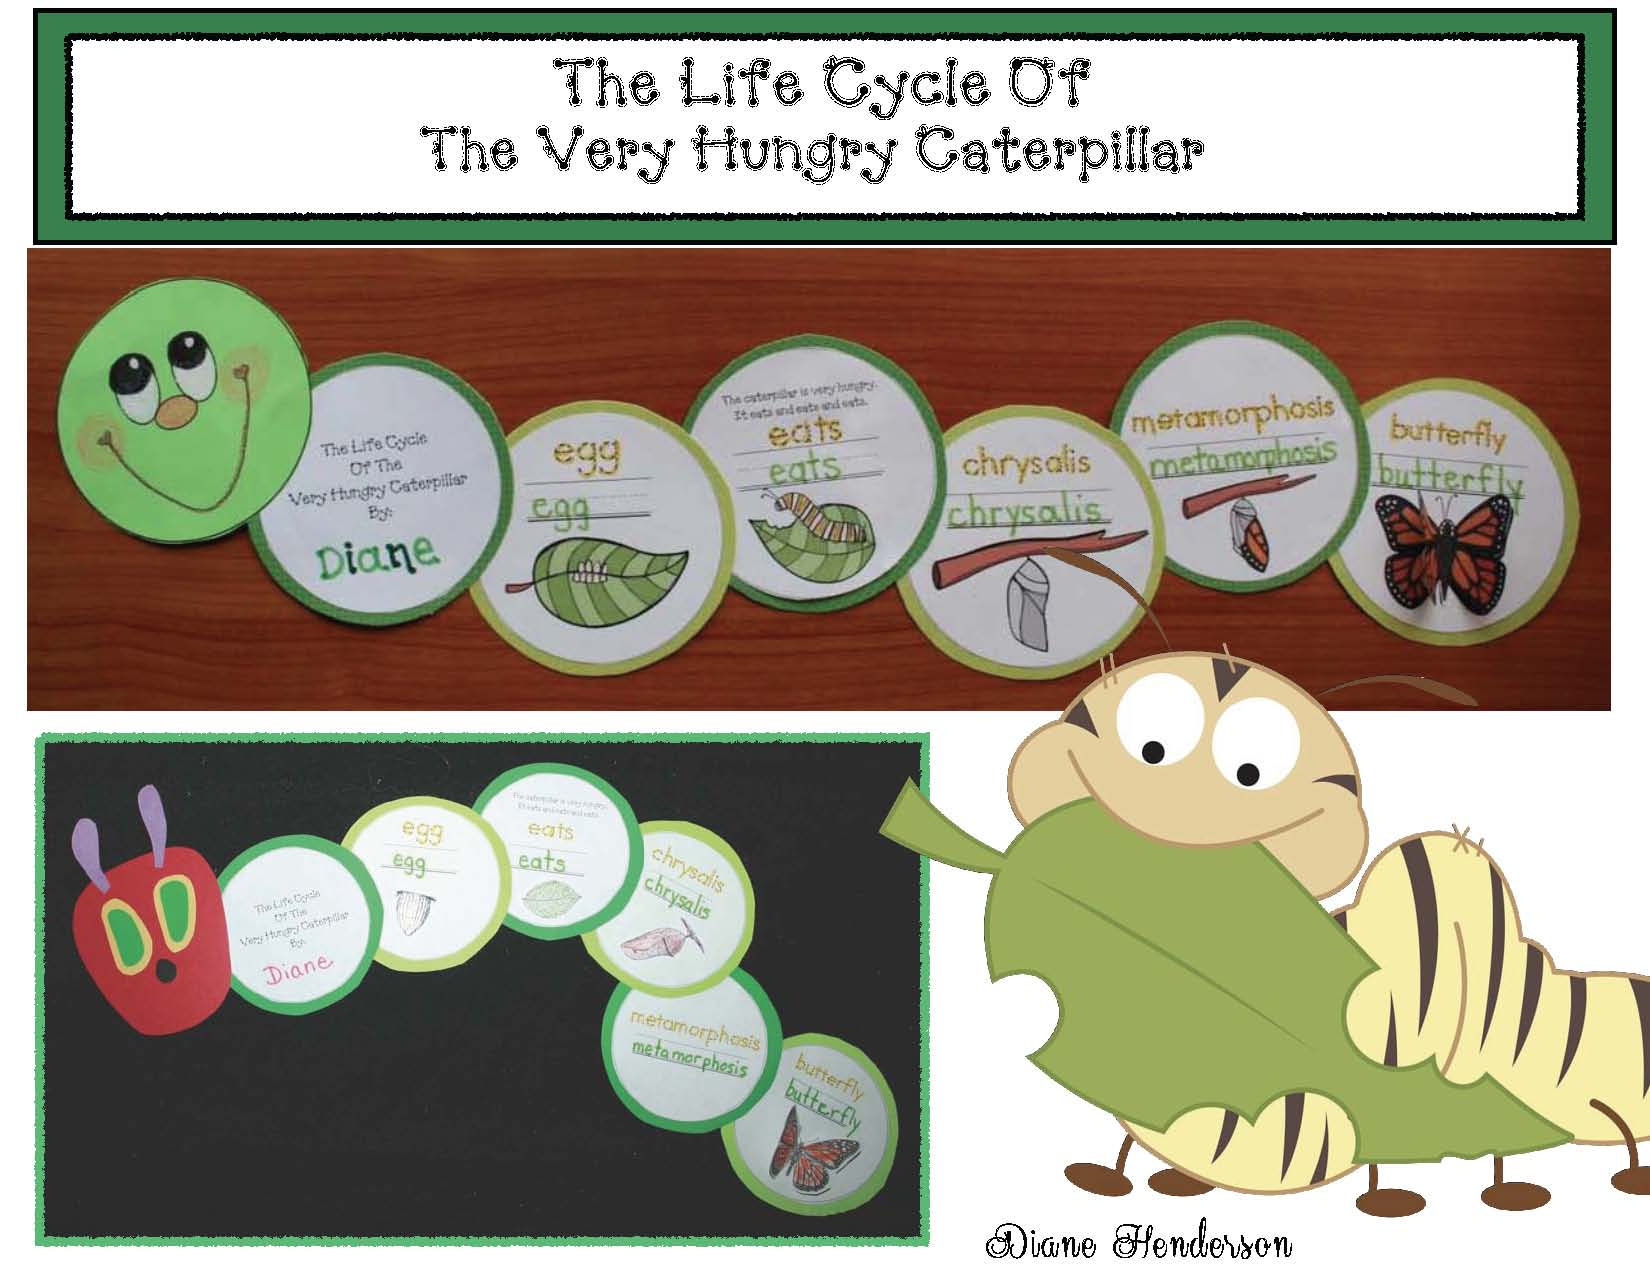 life cycle of a butterfly activities, life cycle of a butterfly crafts, the very hungry caterpillar activities, photographs of real butterflies, photographs of caterpillars, the very hungry caterpillar crafts